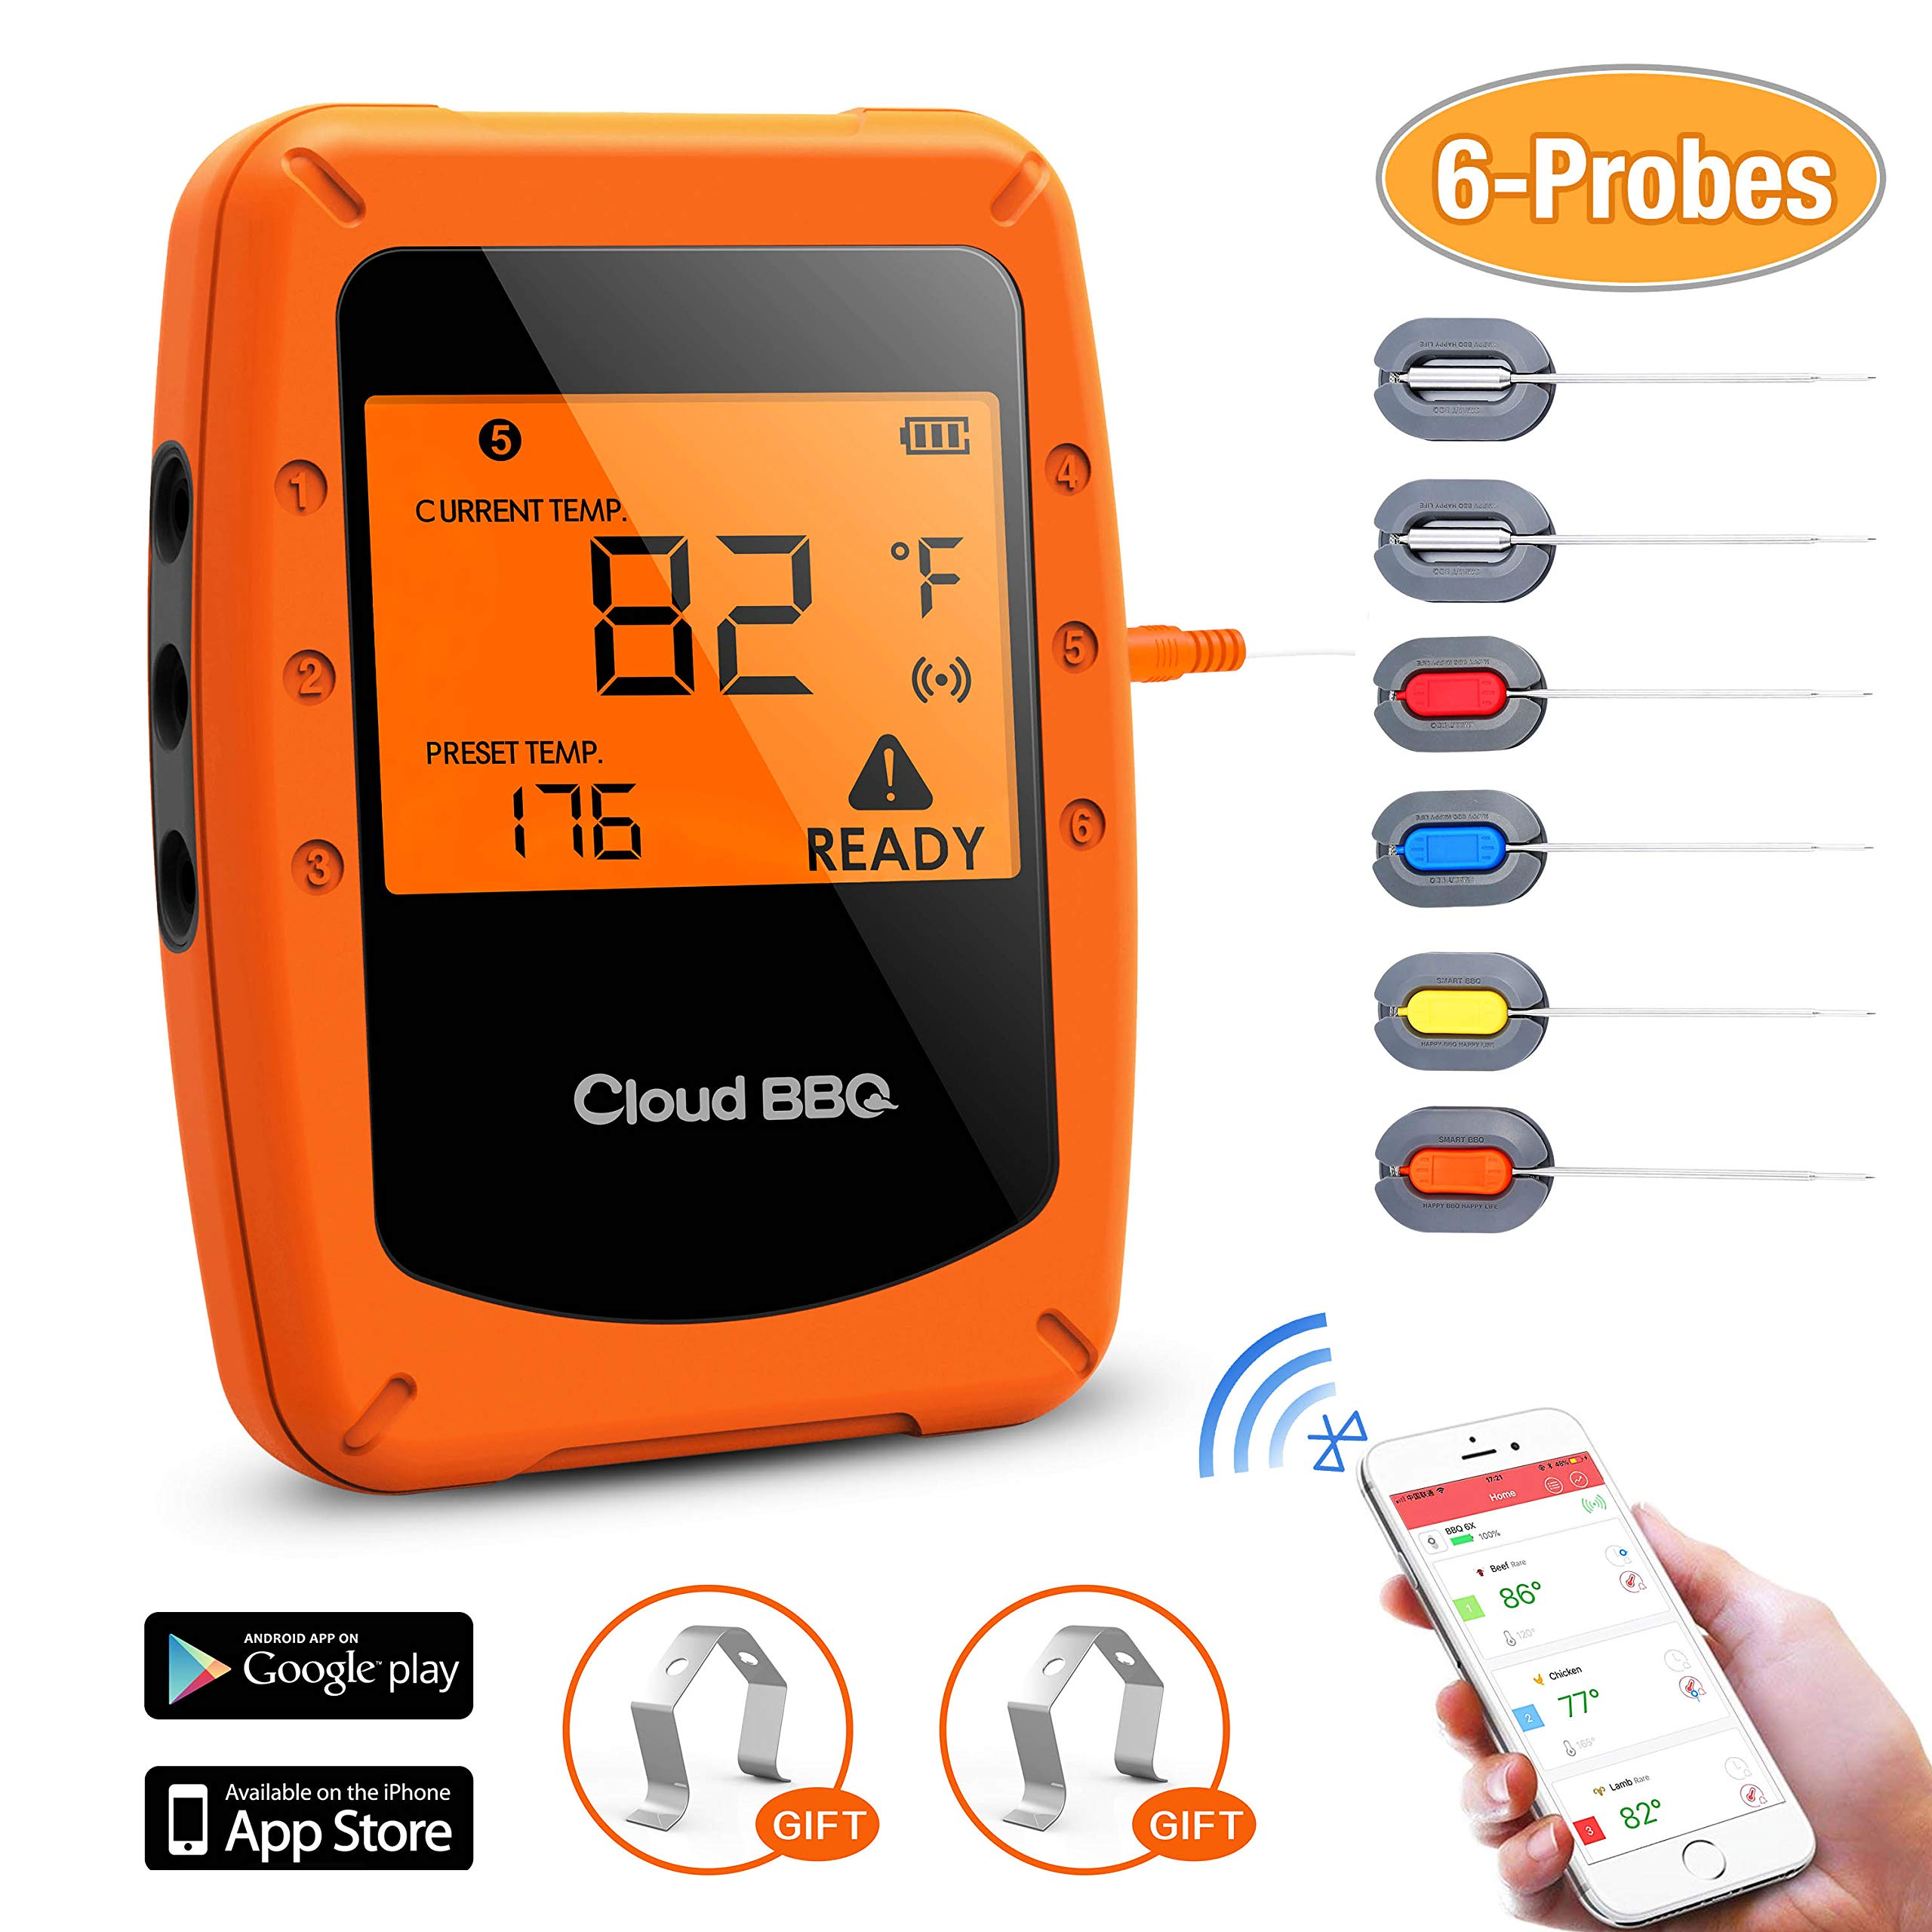 Beaspire Wireless Bluetooth Meat Smoker Thermometer for Grilling with APP (6 Probes) - Digital Remote Grill BBQ Thermometer Oven Safe for Smokers Kitchen Food Cooking